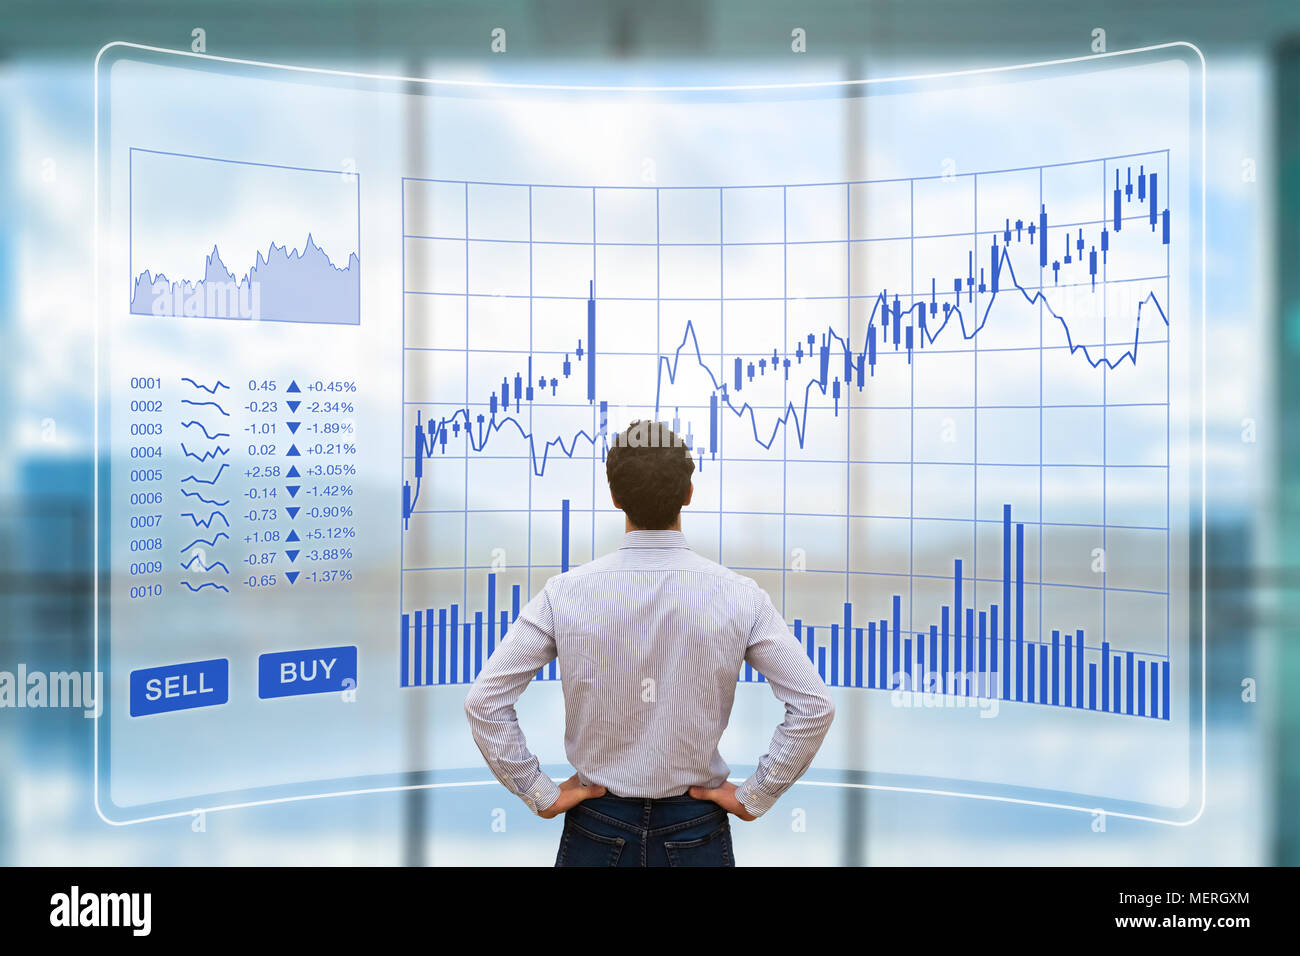 Forex Trader Stock Photos  Forex Trader Stock Images  Alamy